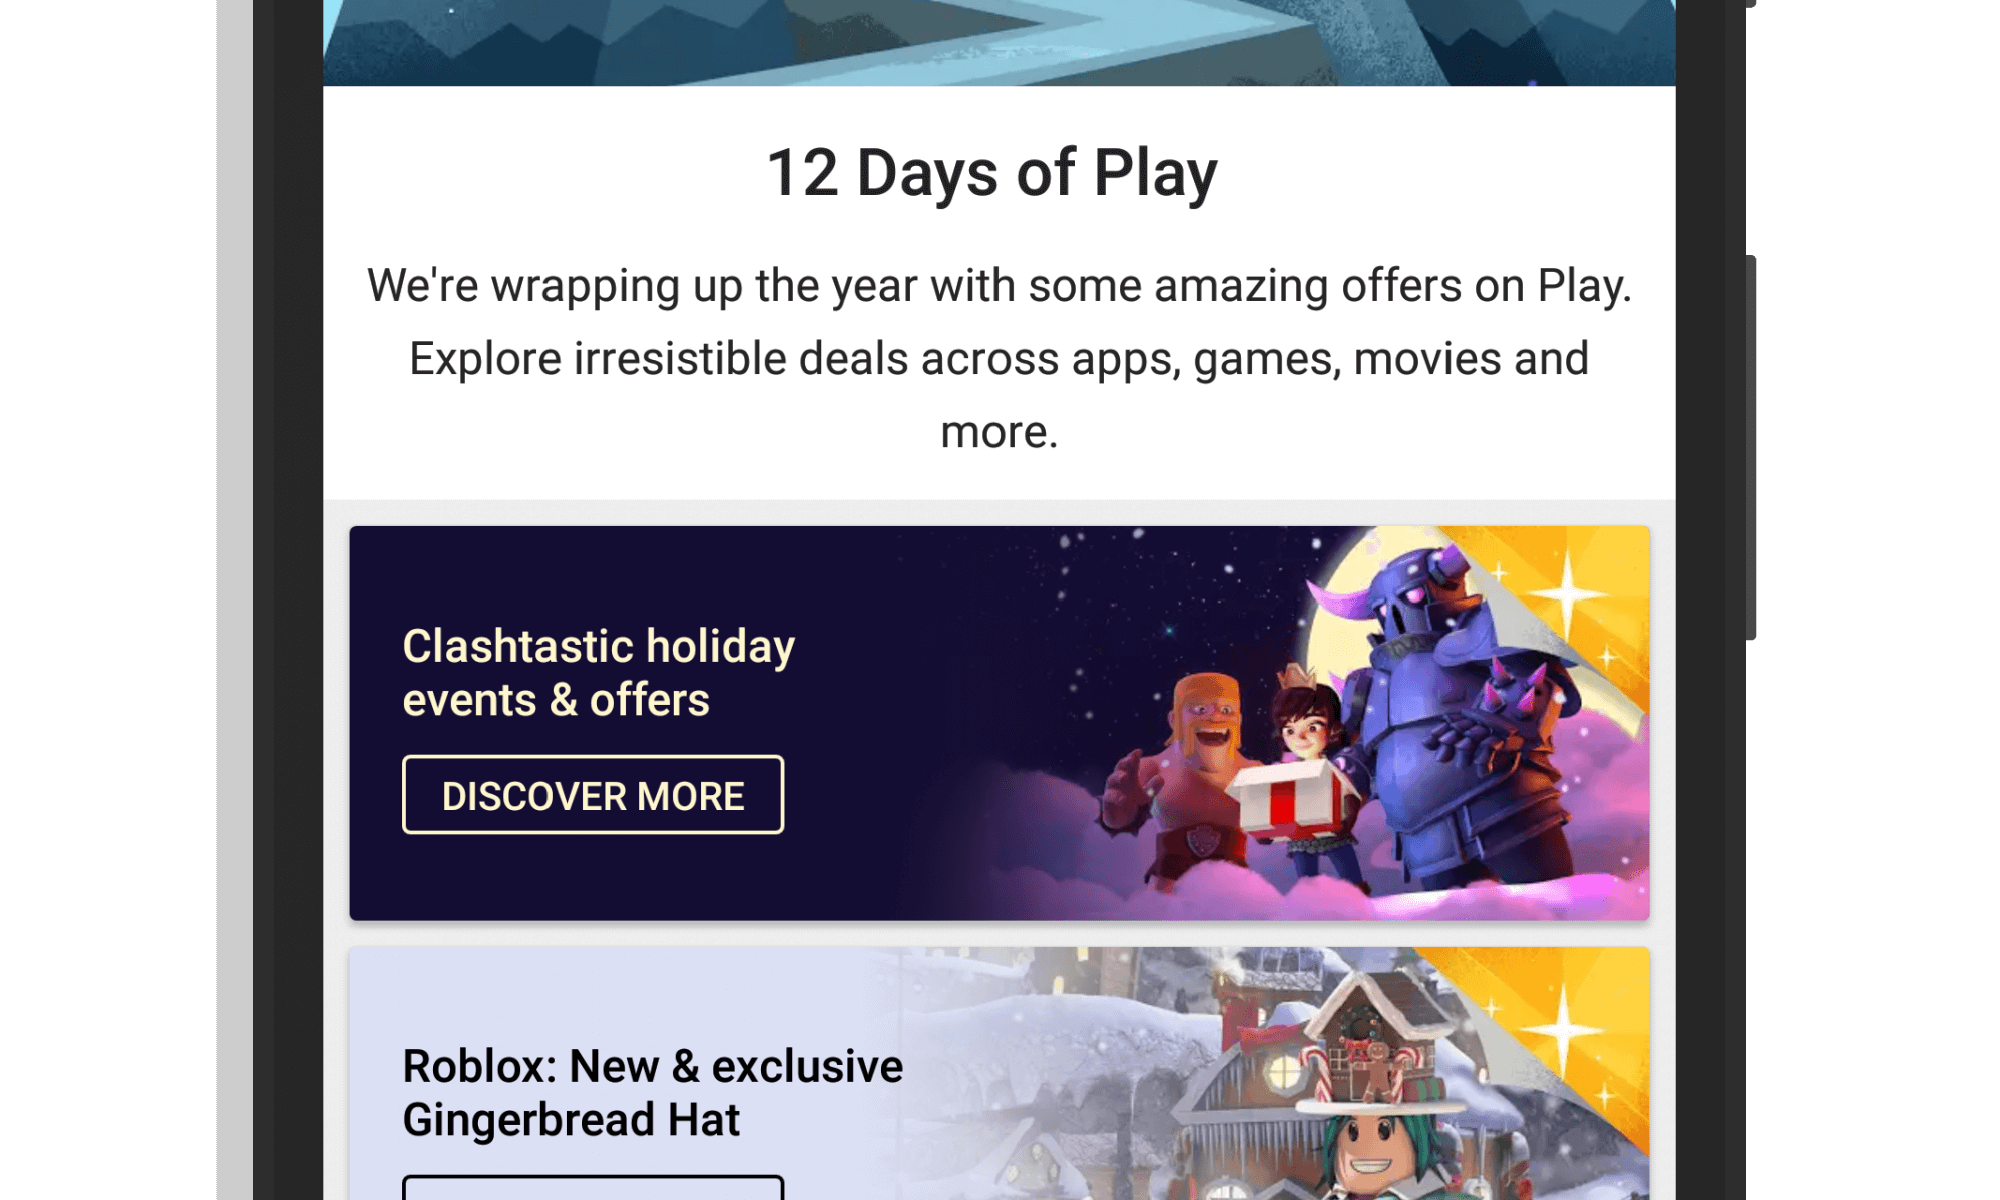 Google 12 Days of Play Promotion